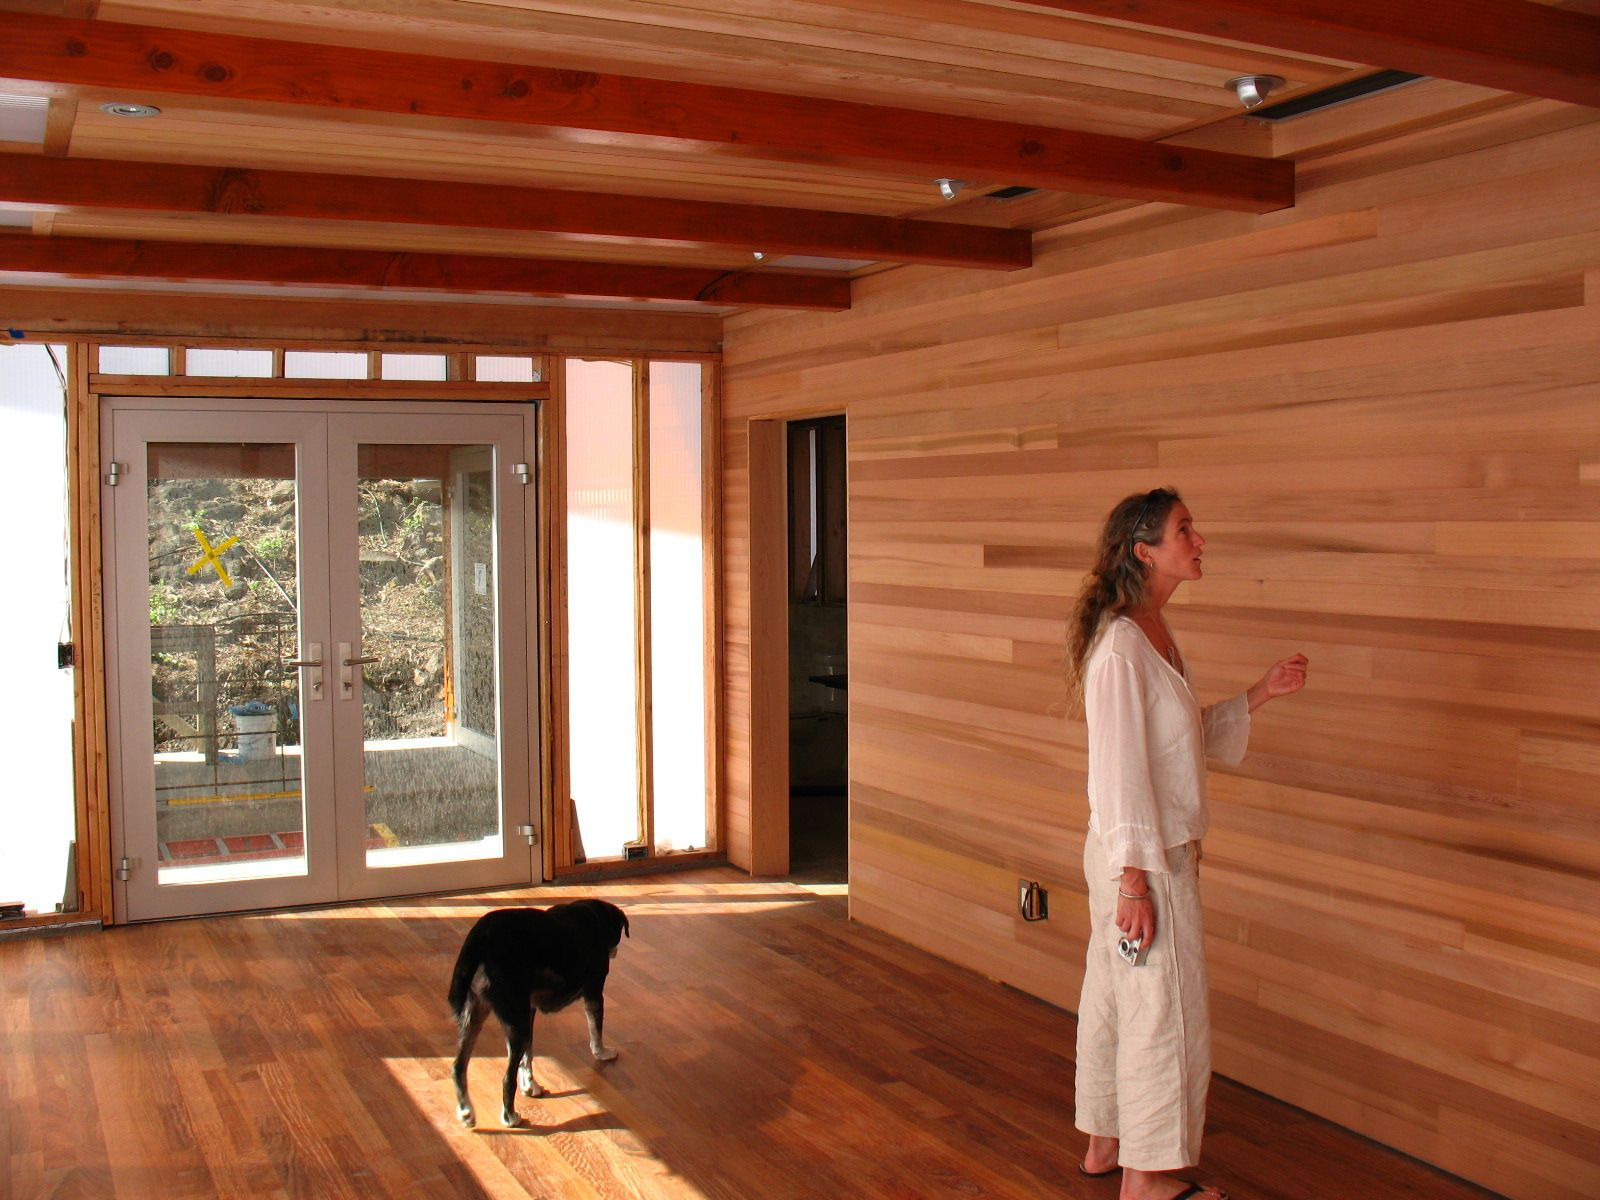 Wood Ceiling Treatments The Master Bedroom Is Lined With Shiplap Cedar Siding And